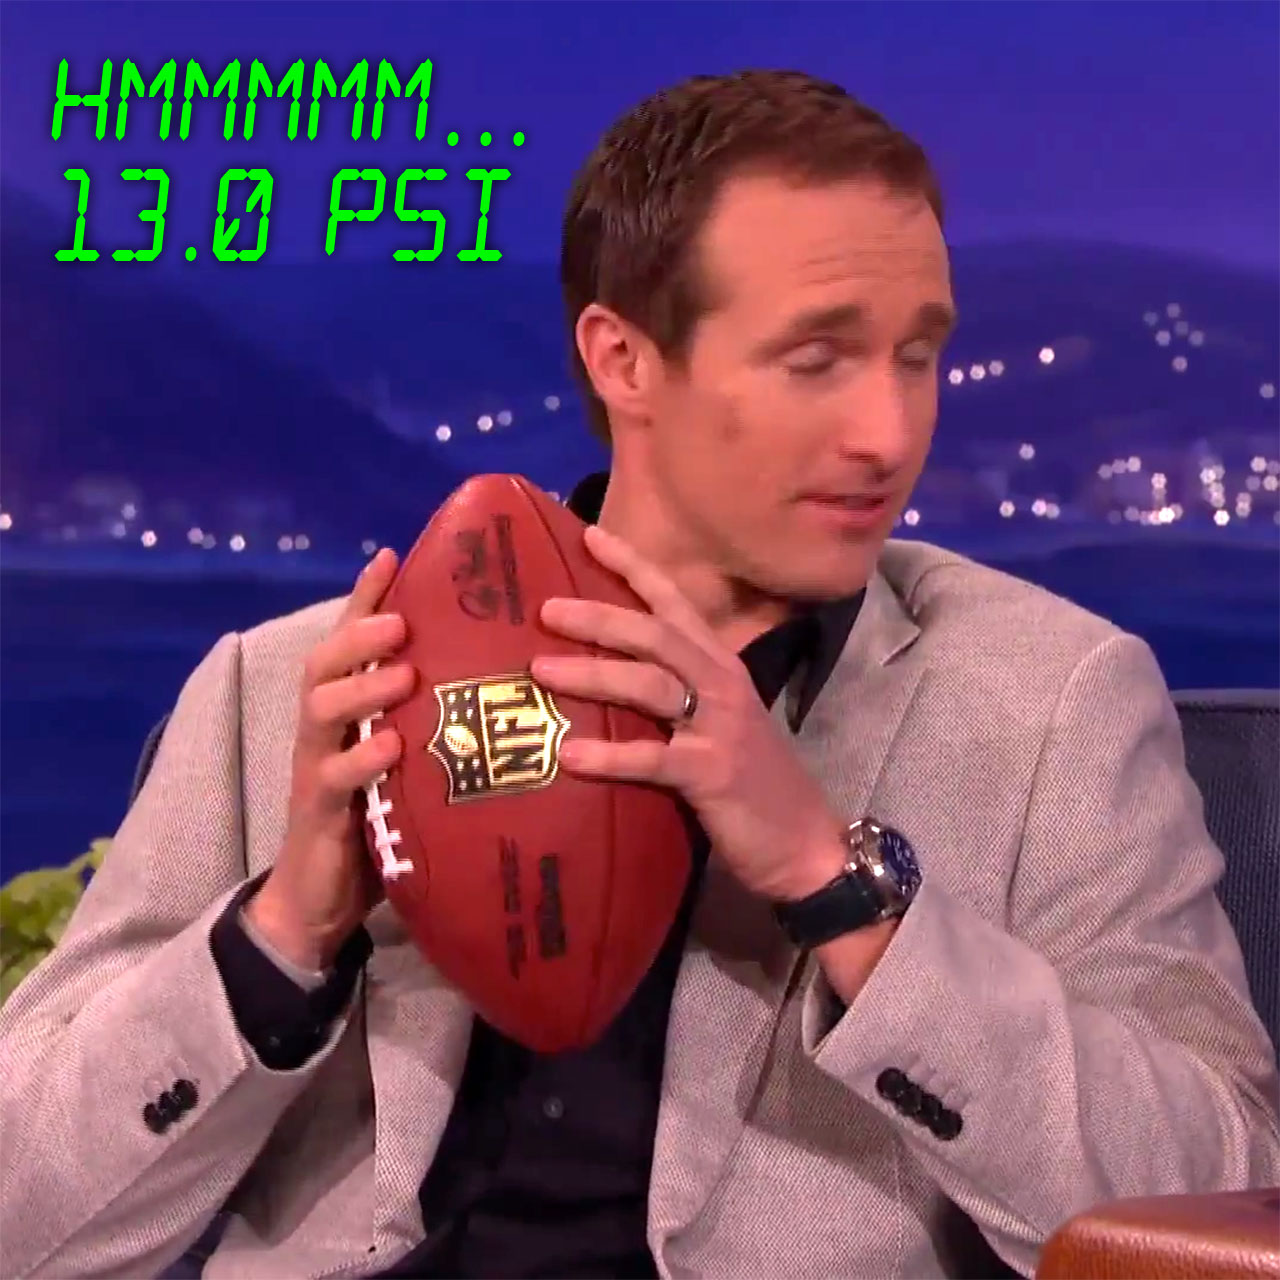 Drew Brees can read ball pressure with his hands